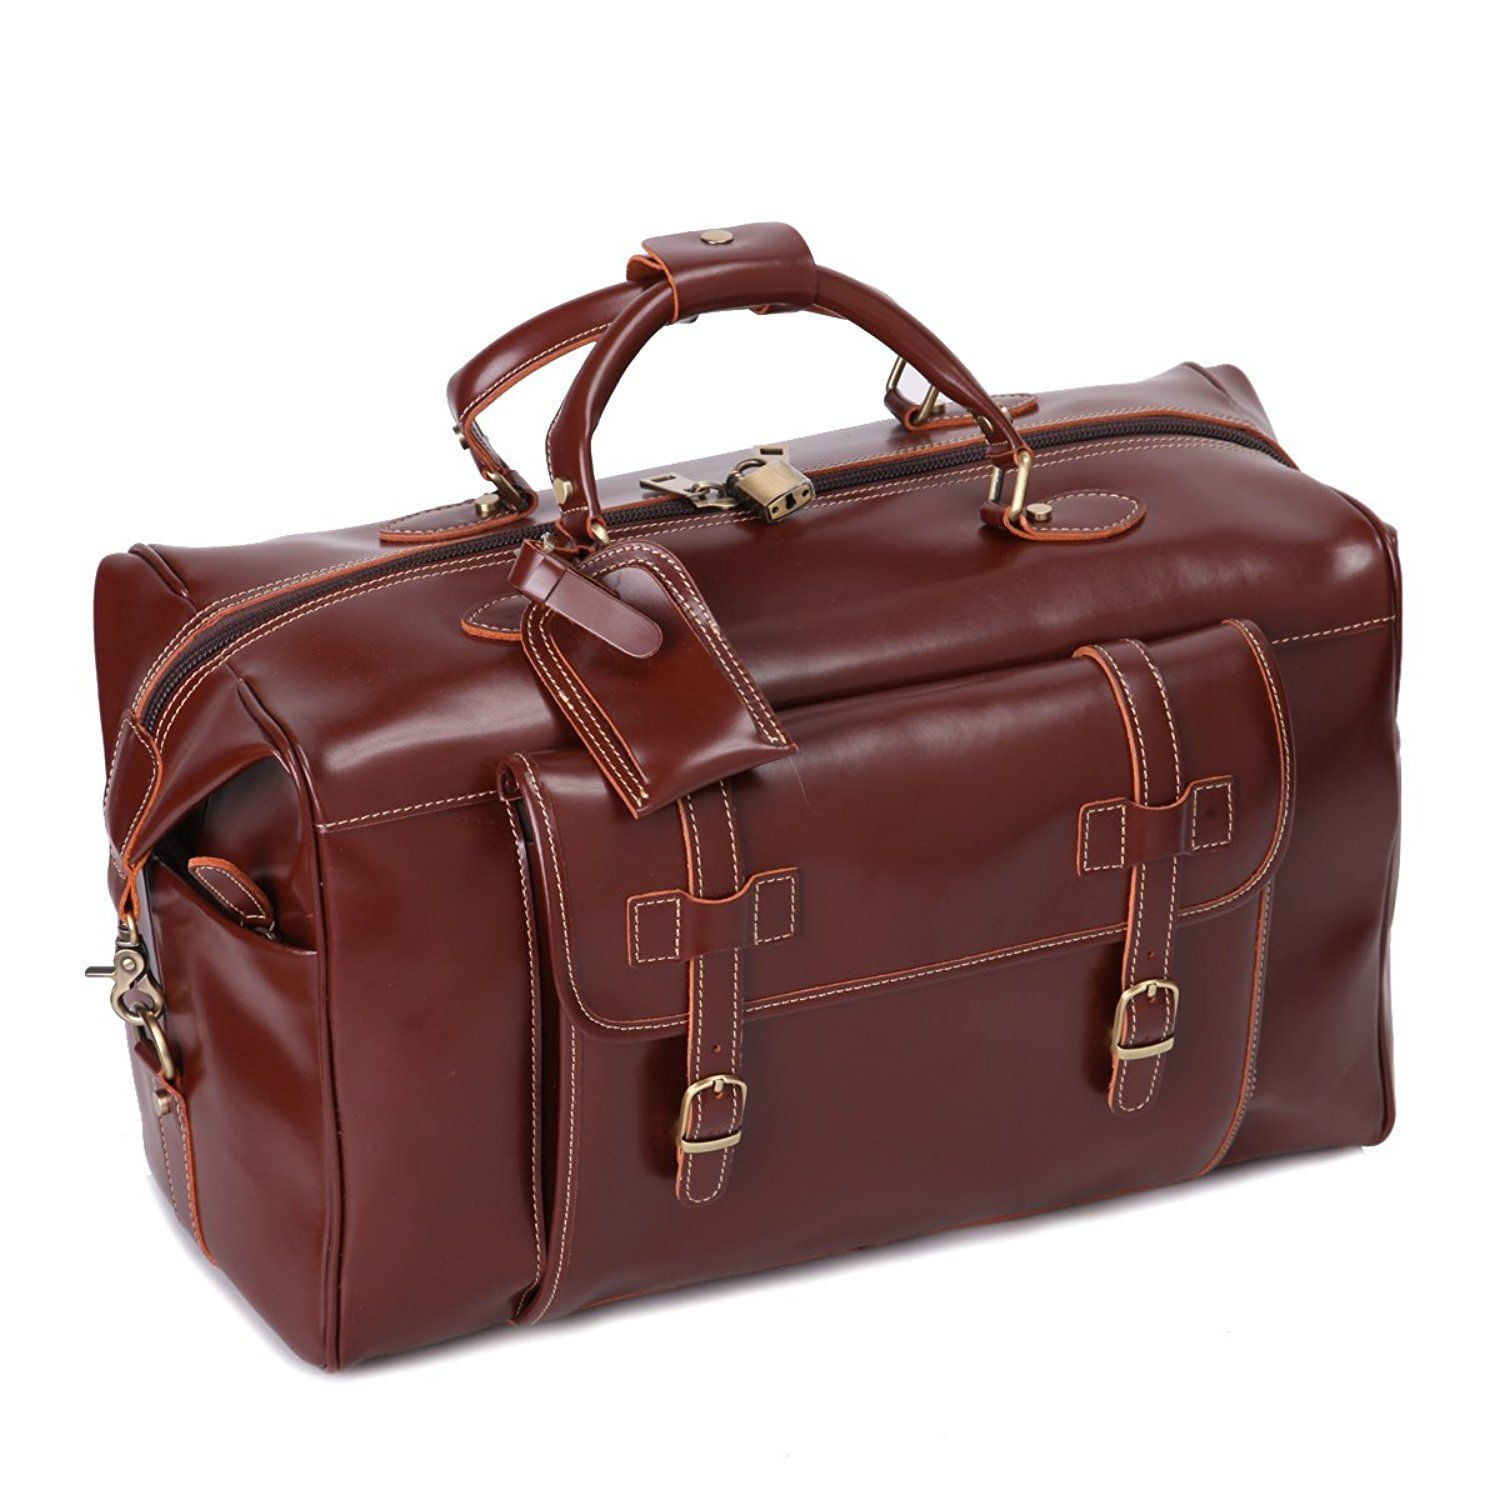 a76d3af75ba Leathario Mens Genuine Leather Overnight Travel Duffle Weekend Bag ...